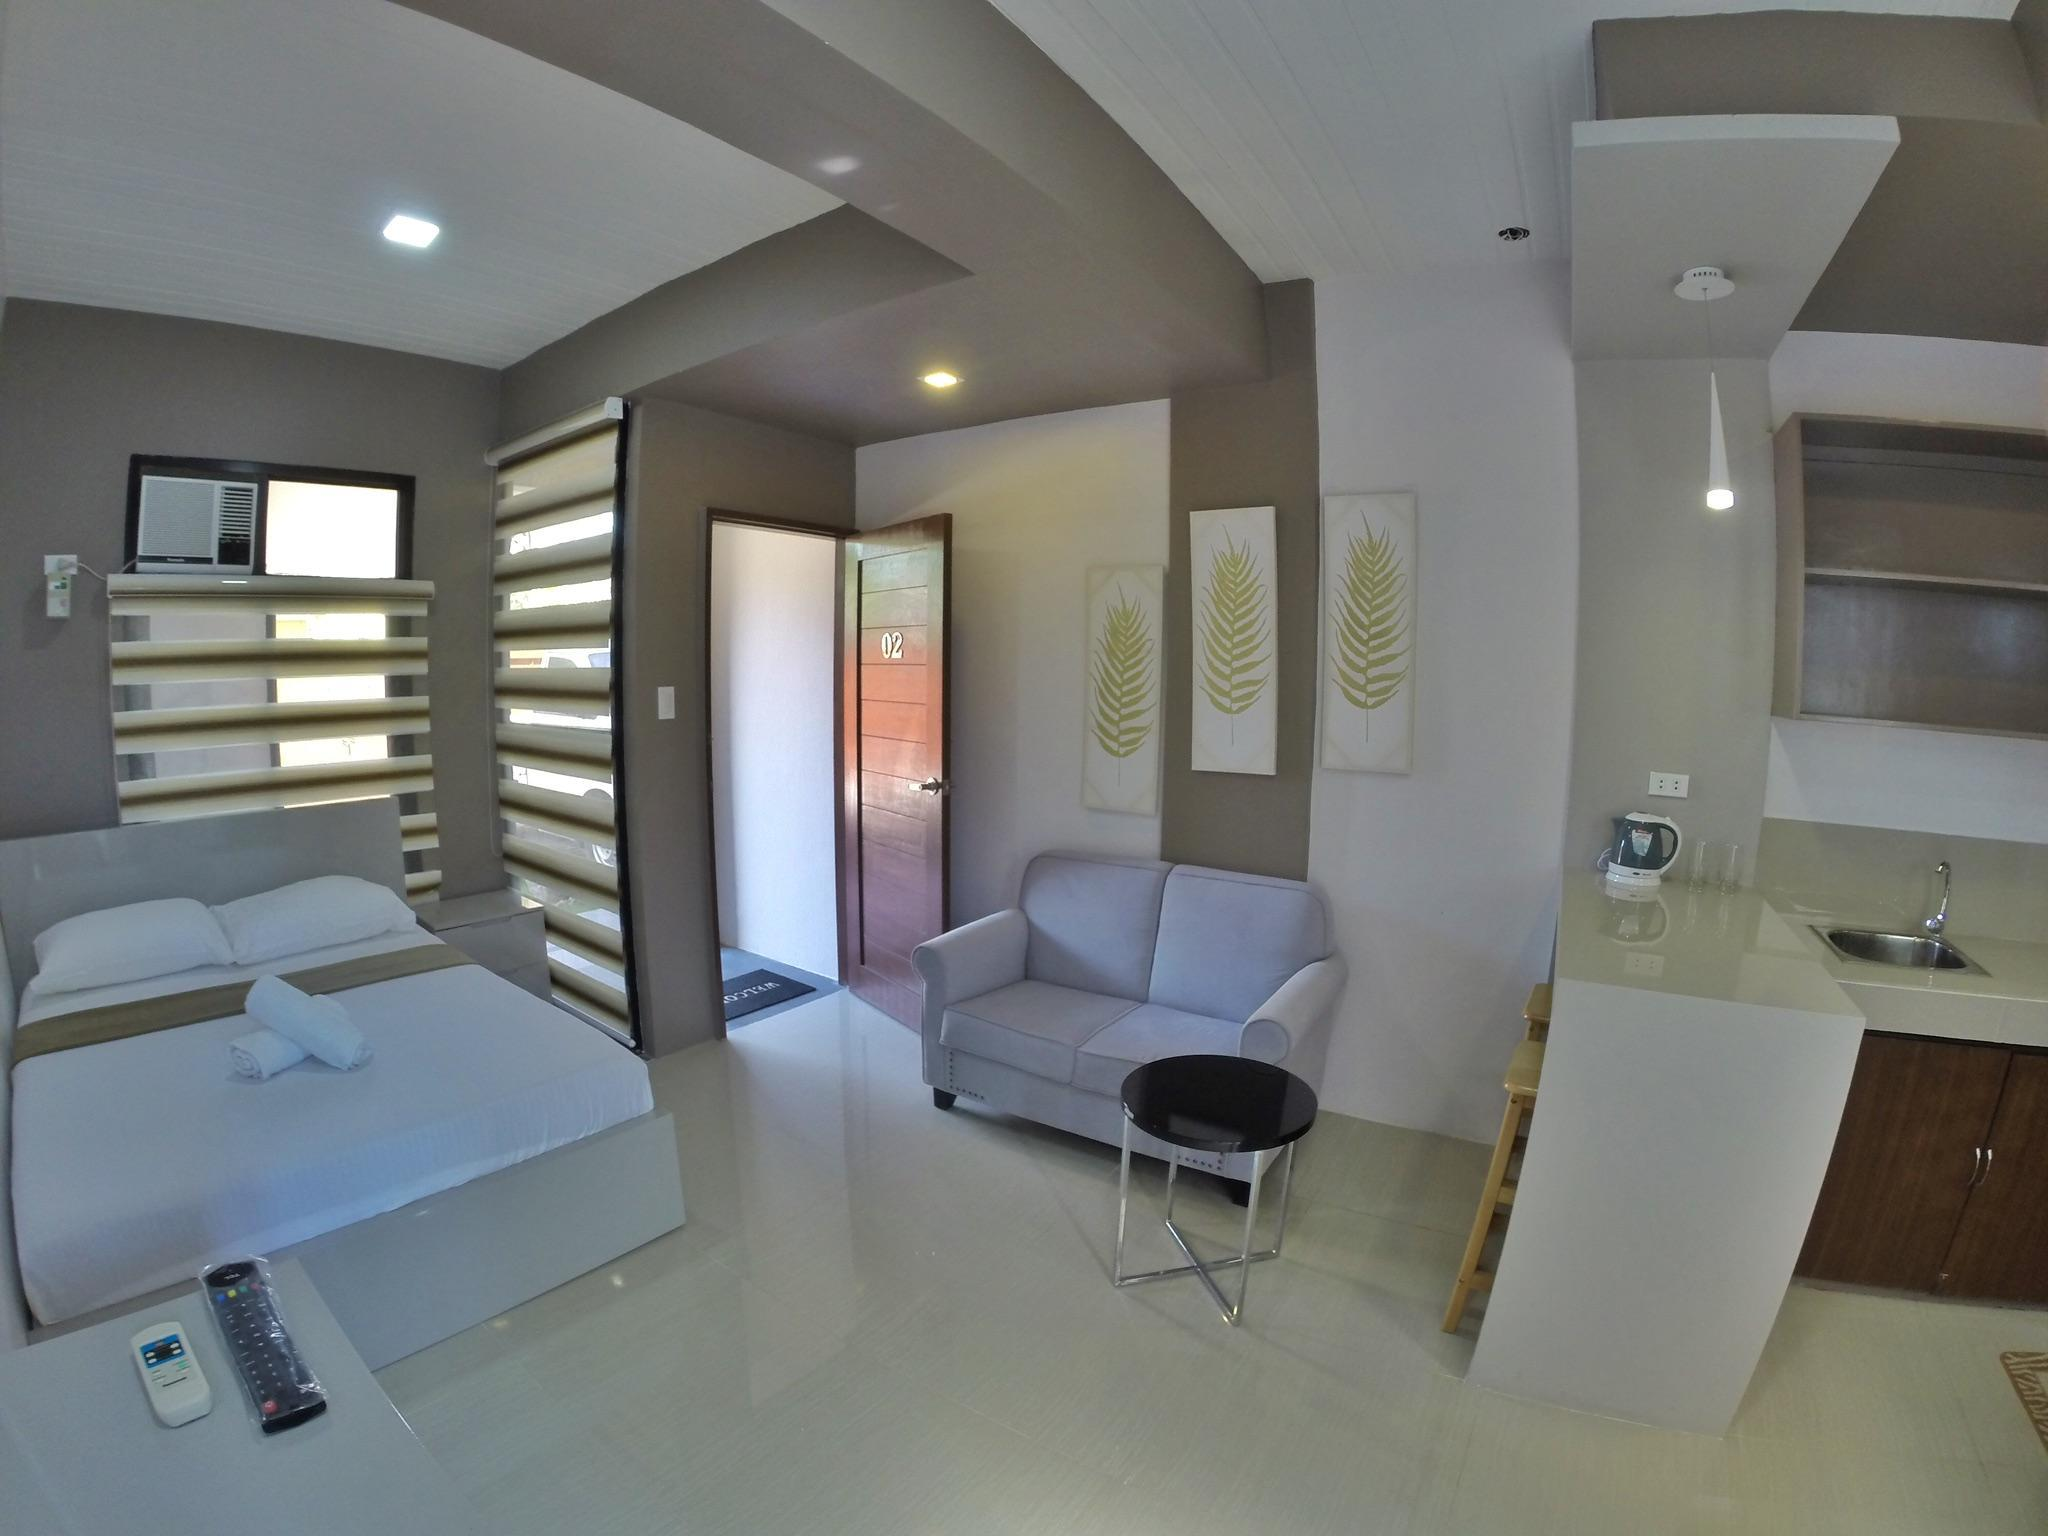 Modern Studio Suite In The Heart Of The City